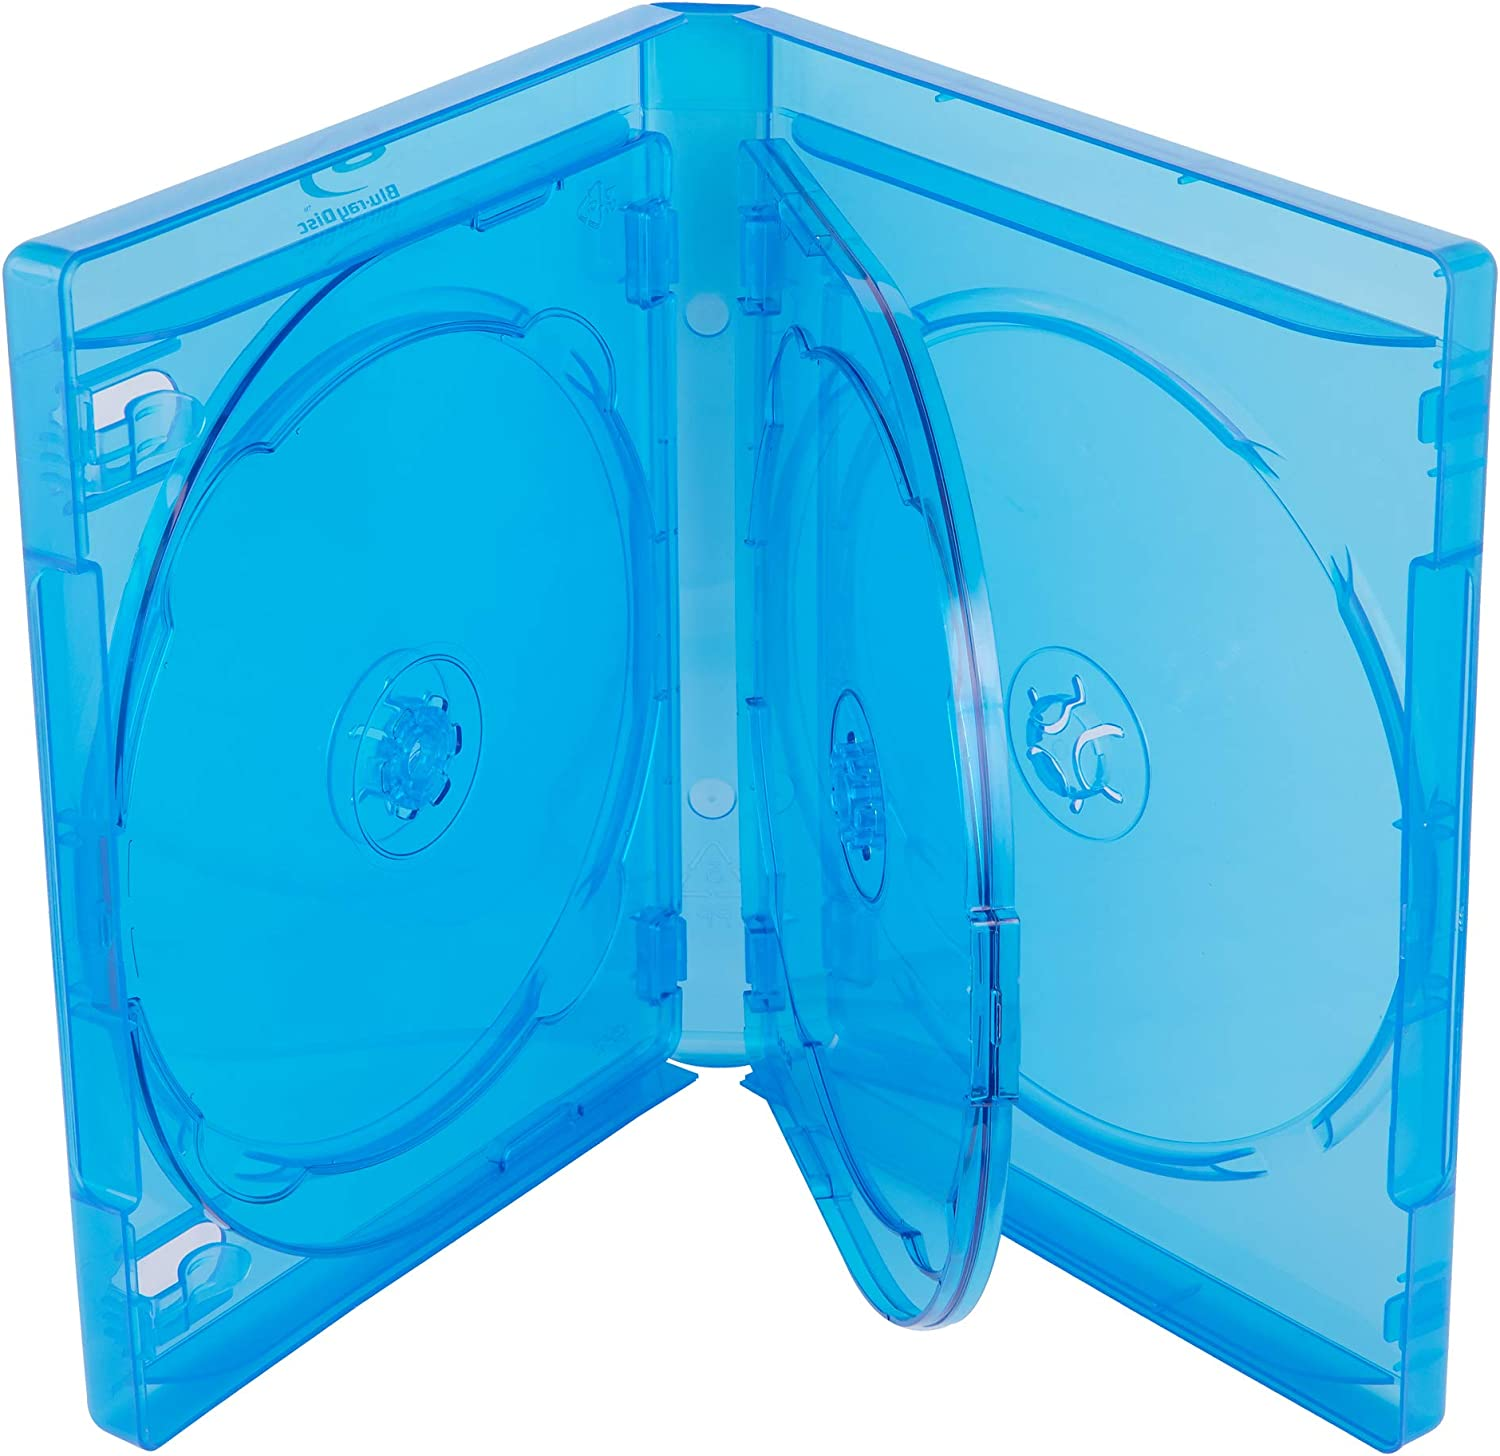 AcePlus 10 pieces Blue Replacement for Blu-ray Movie holds 5 Discs 22mm thickness